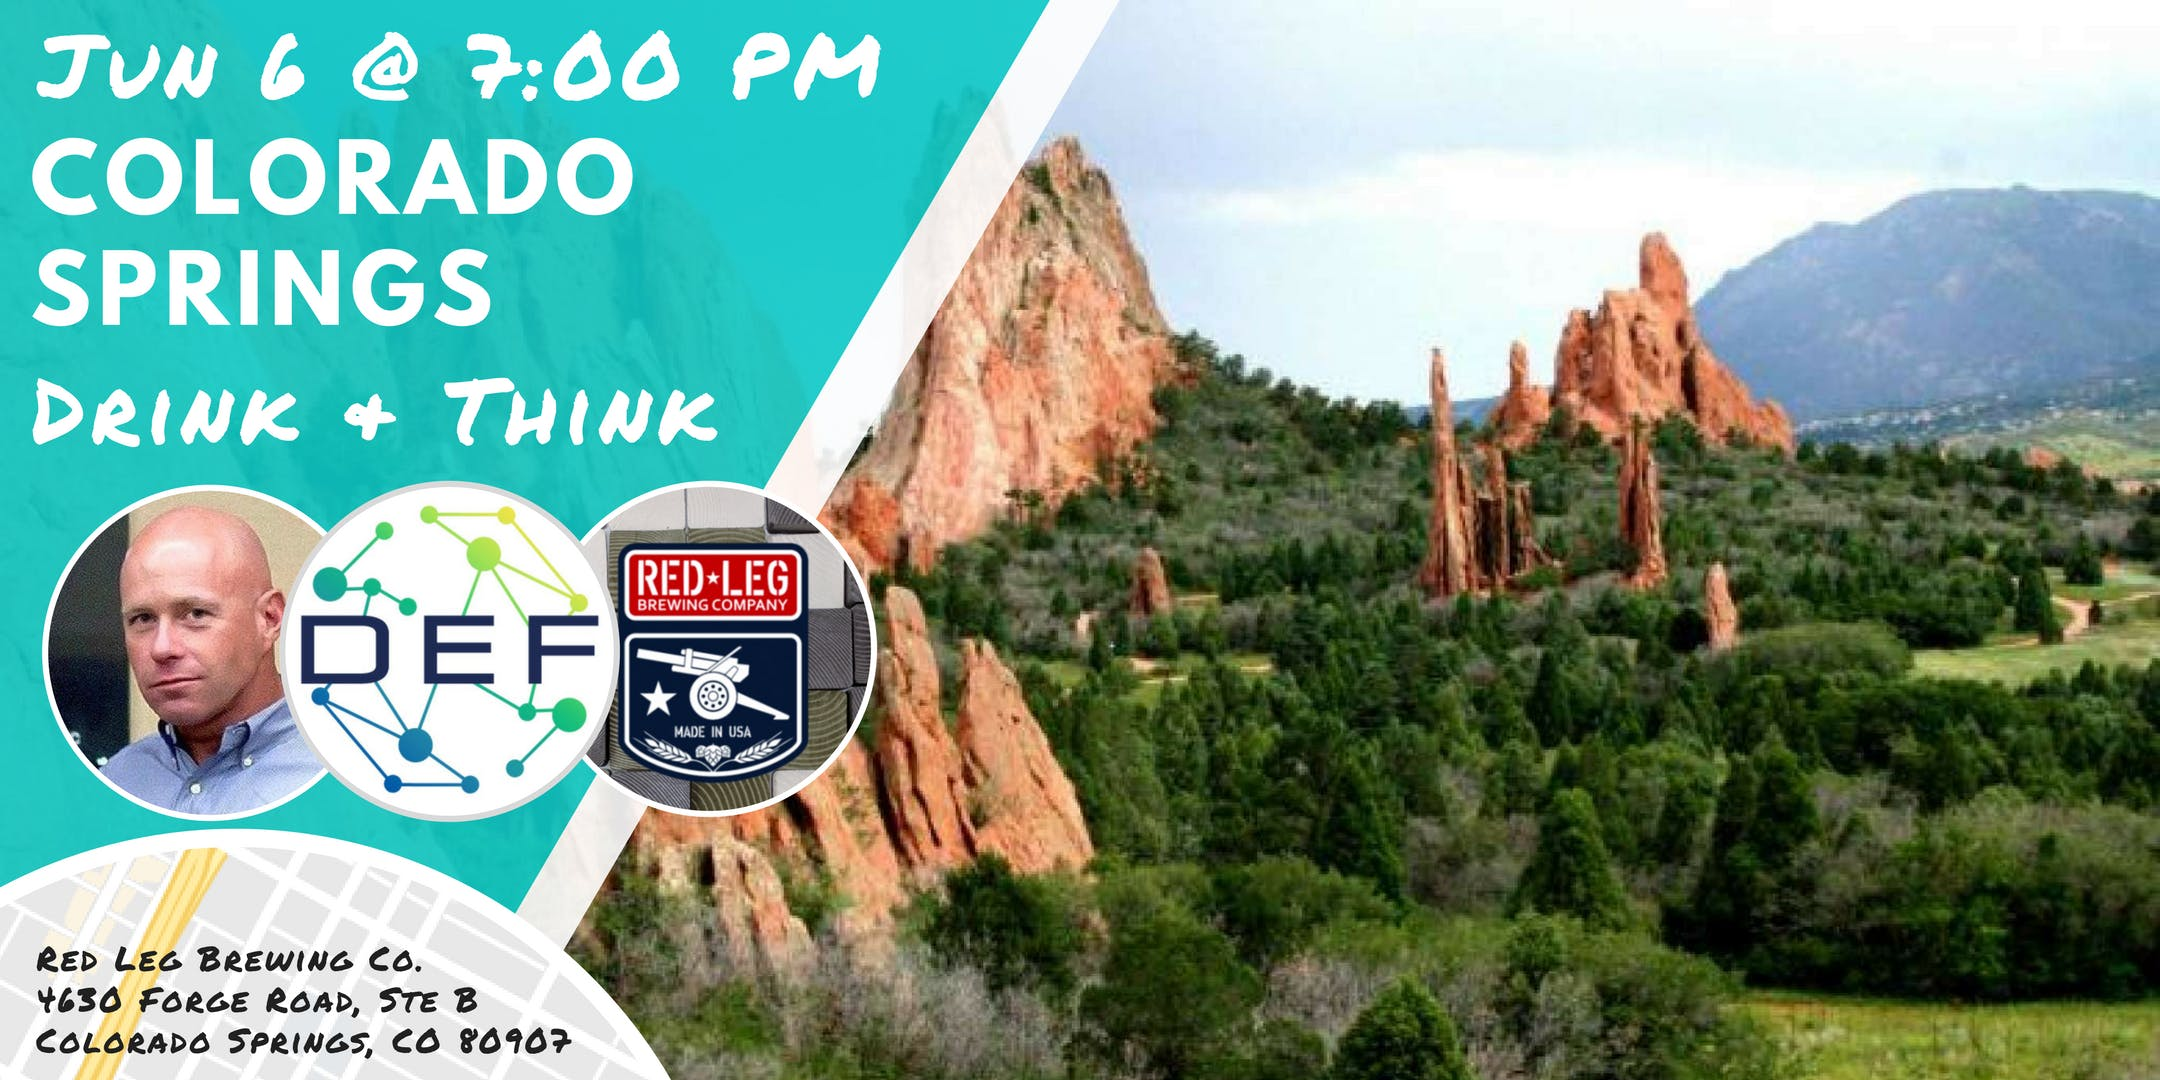 Def colorado springs drink think at red leg brewing company def colorado springs drink think malvernweather Images